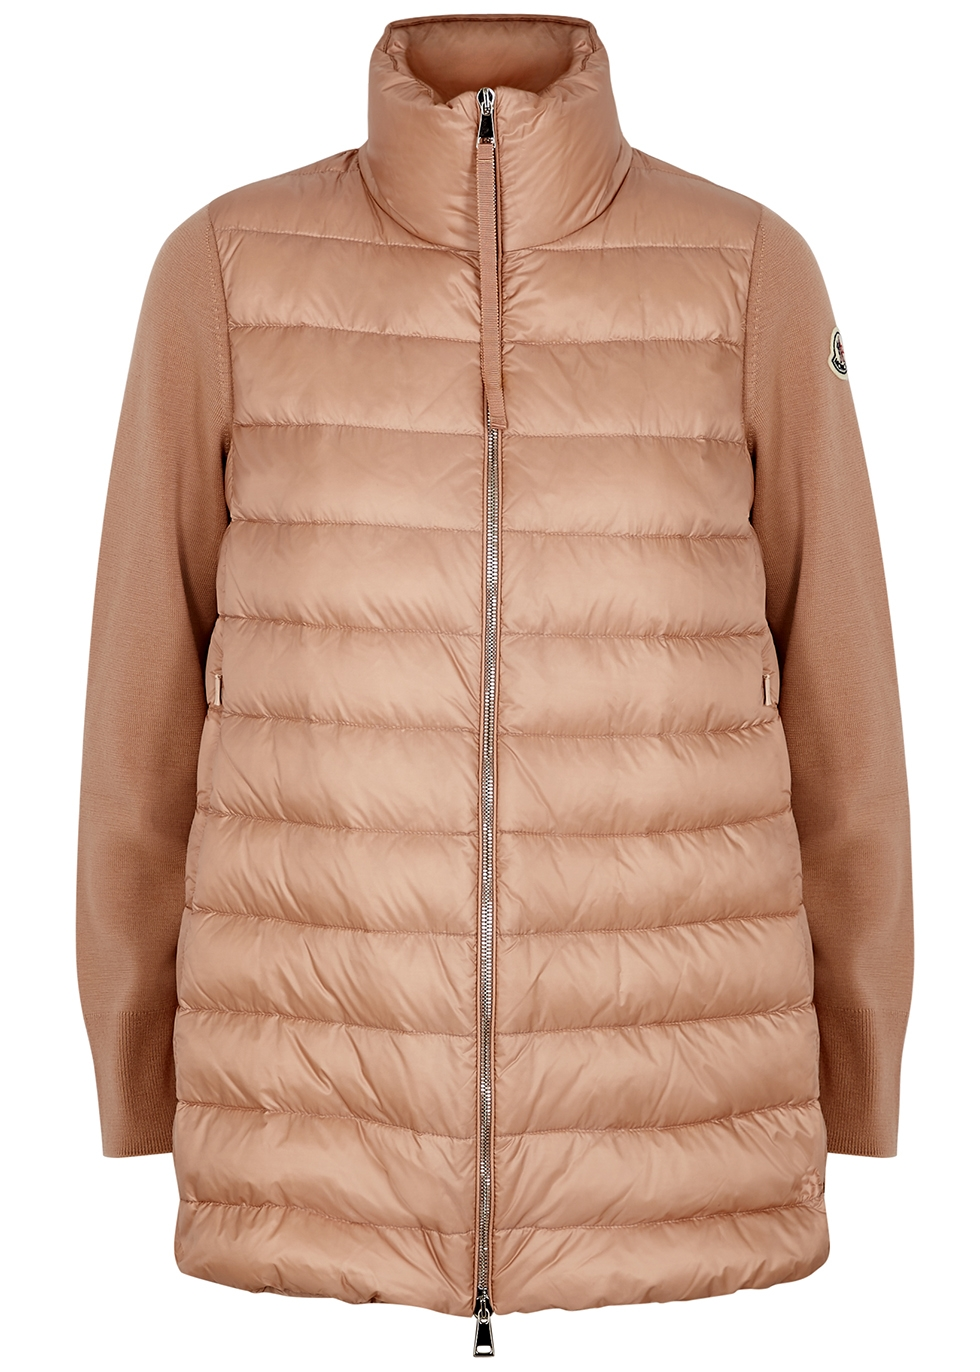 Tricot quilted shell and wool jacket